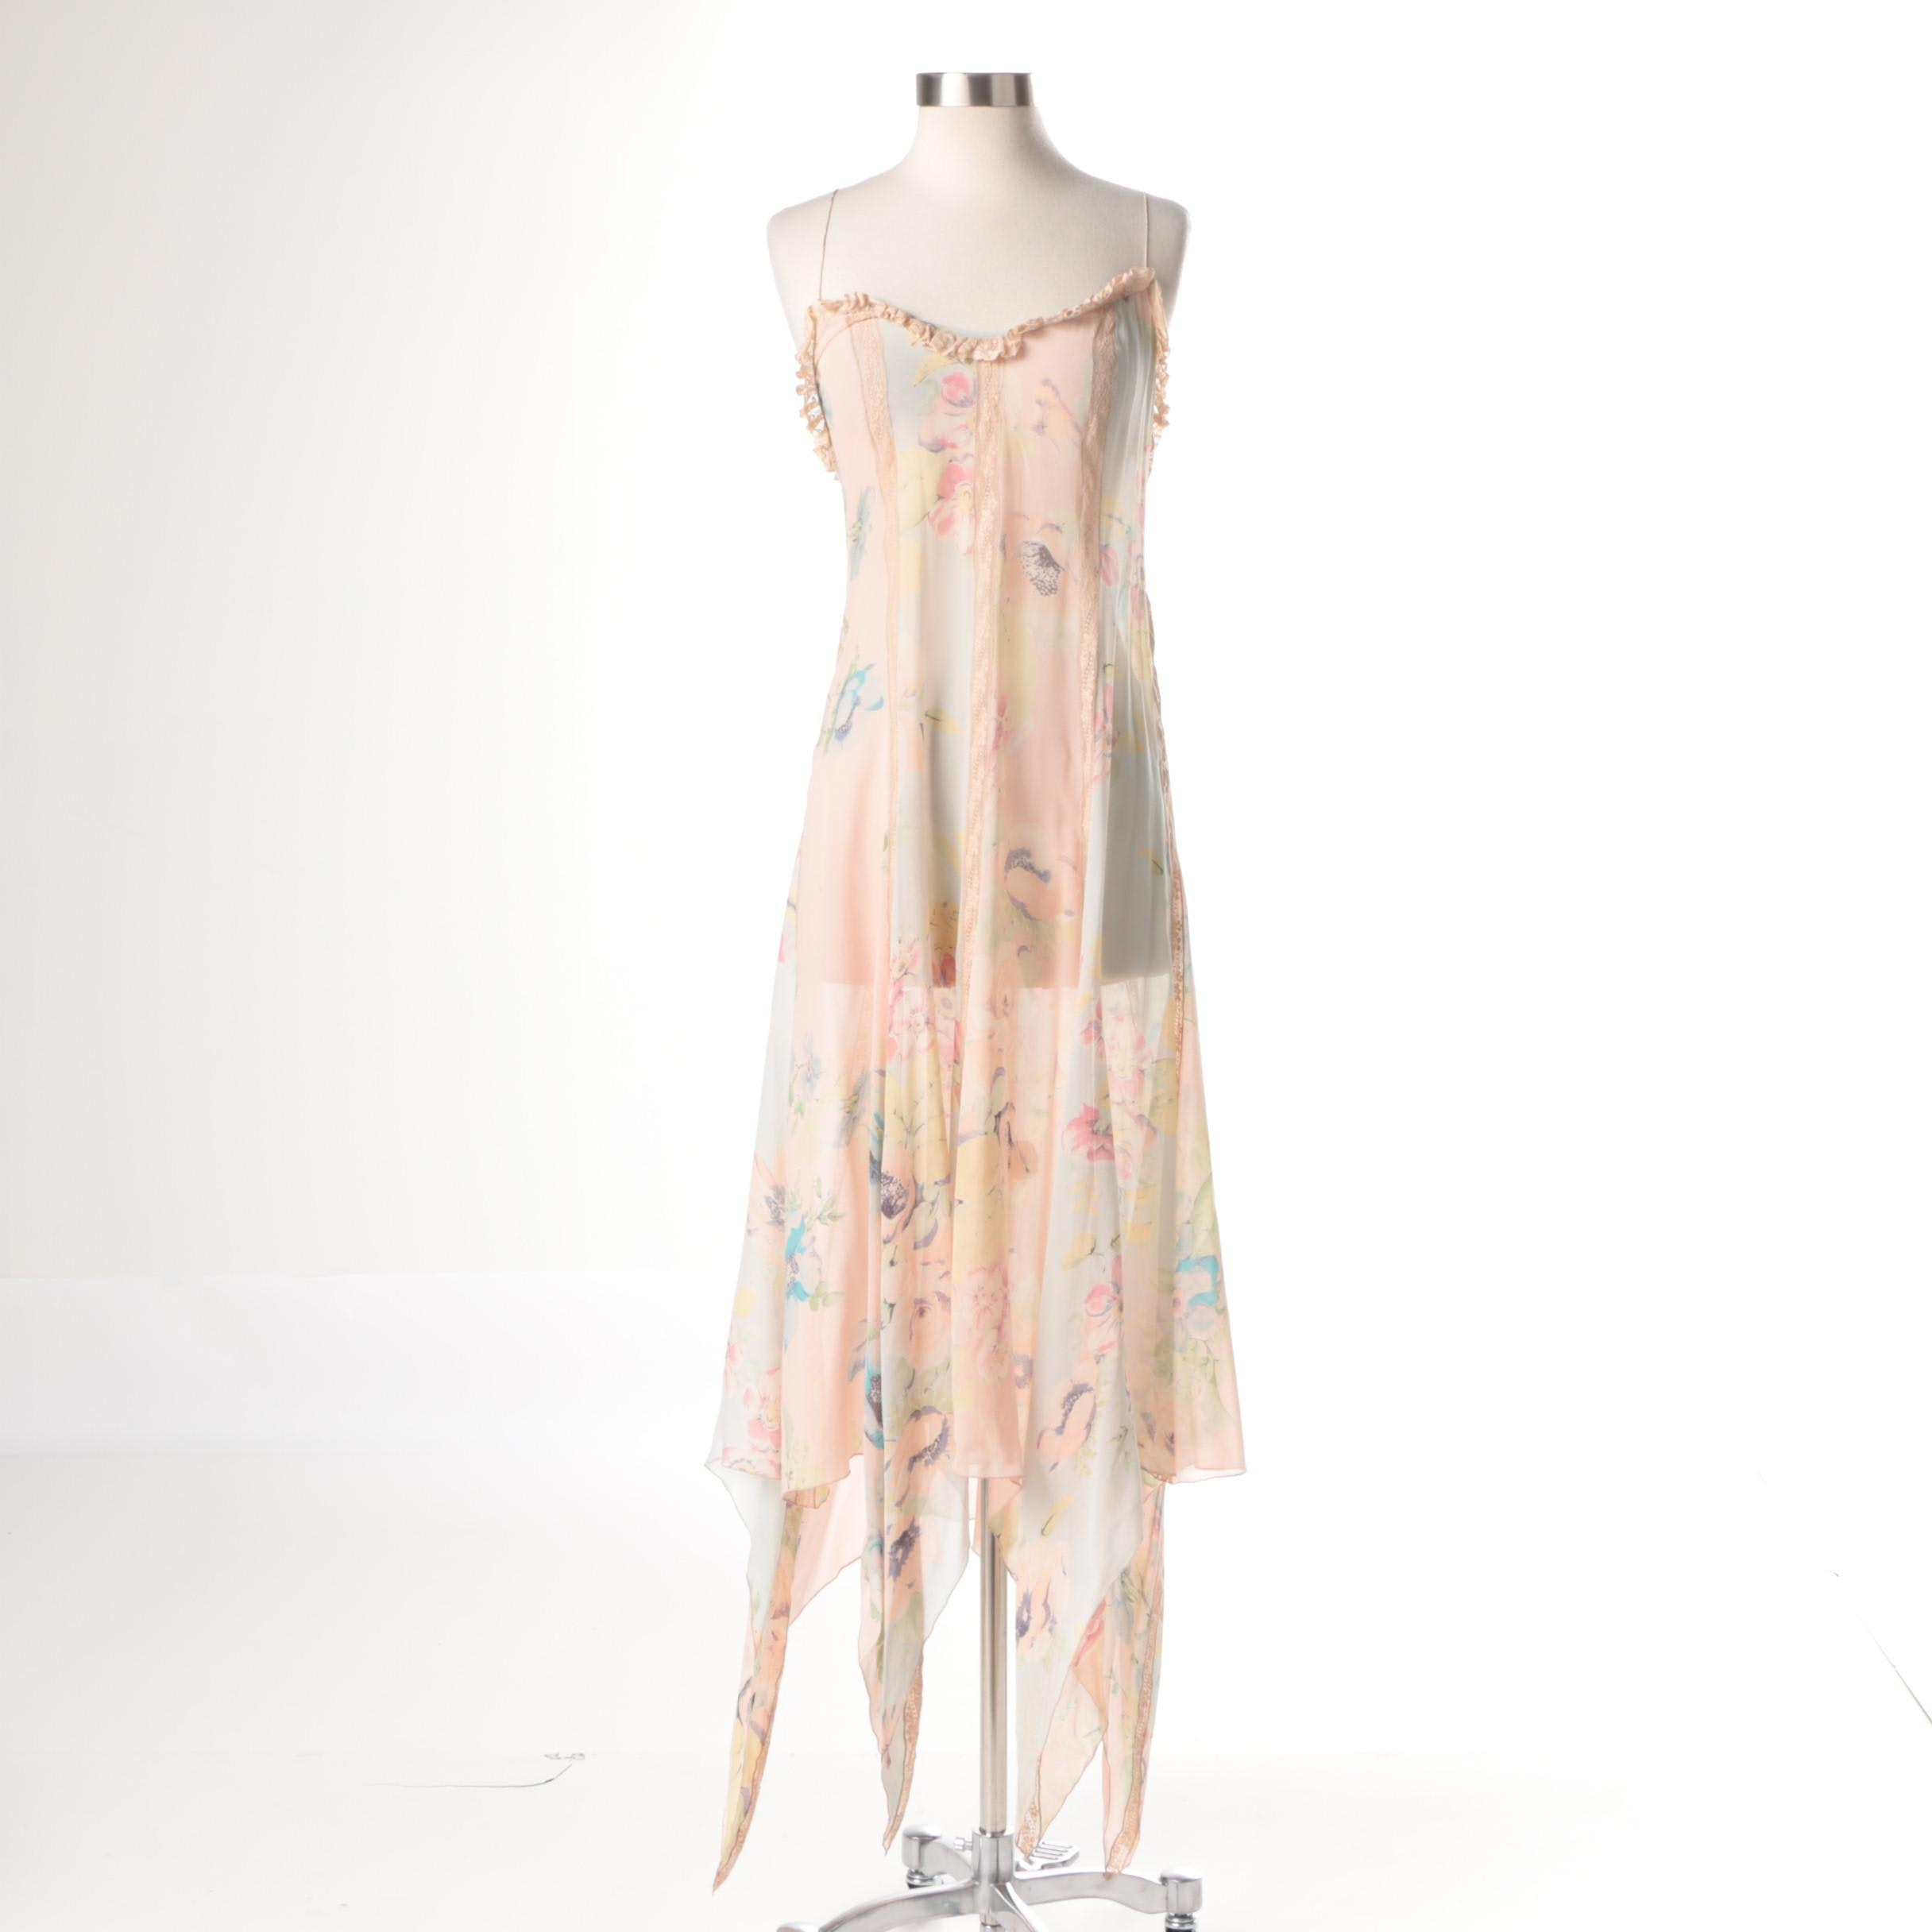 Blumarine Sheer Silk Slip Dress